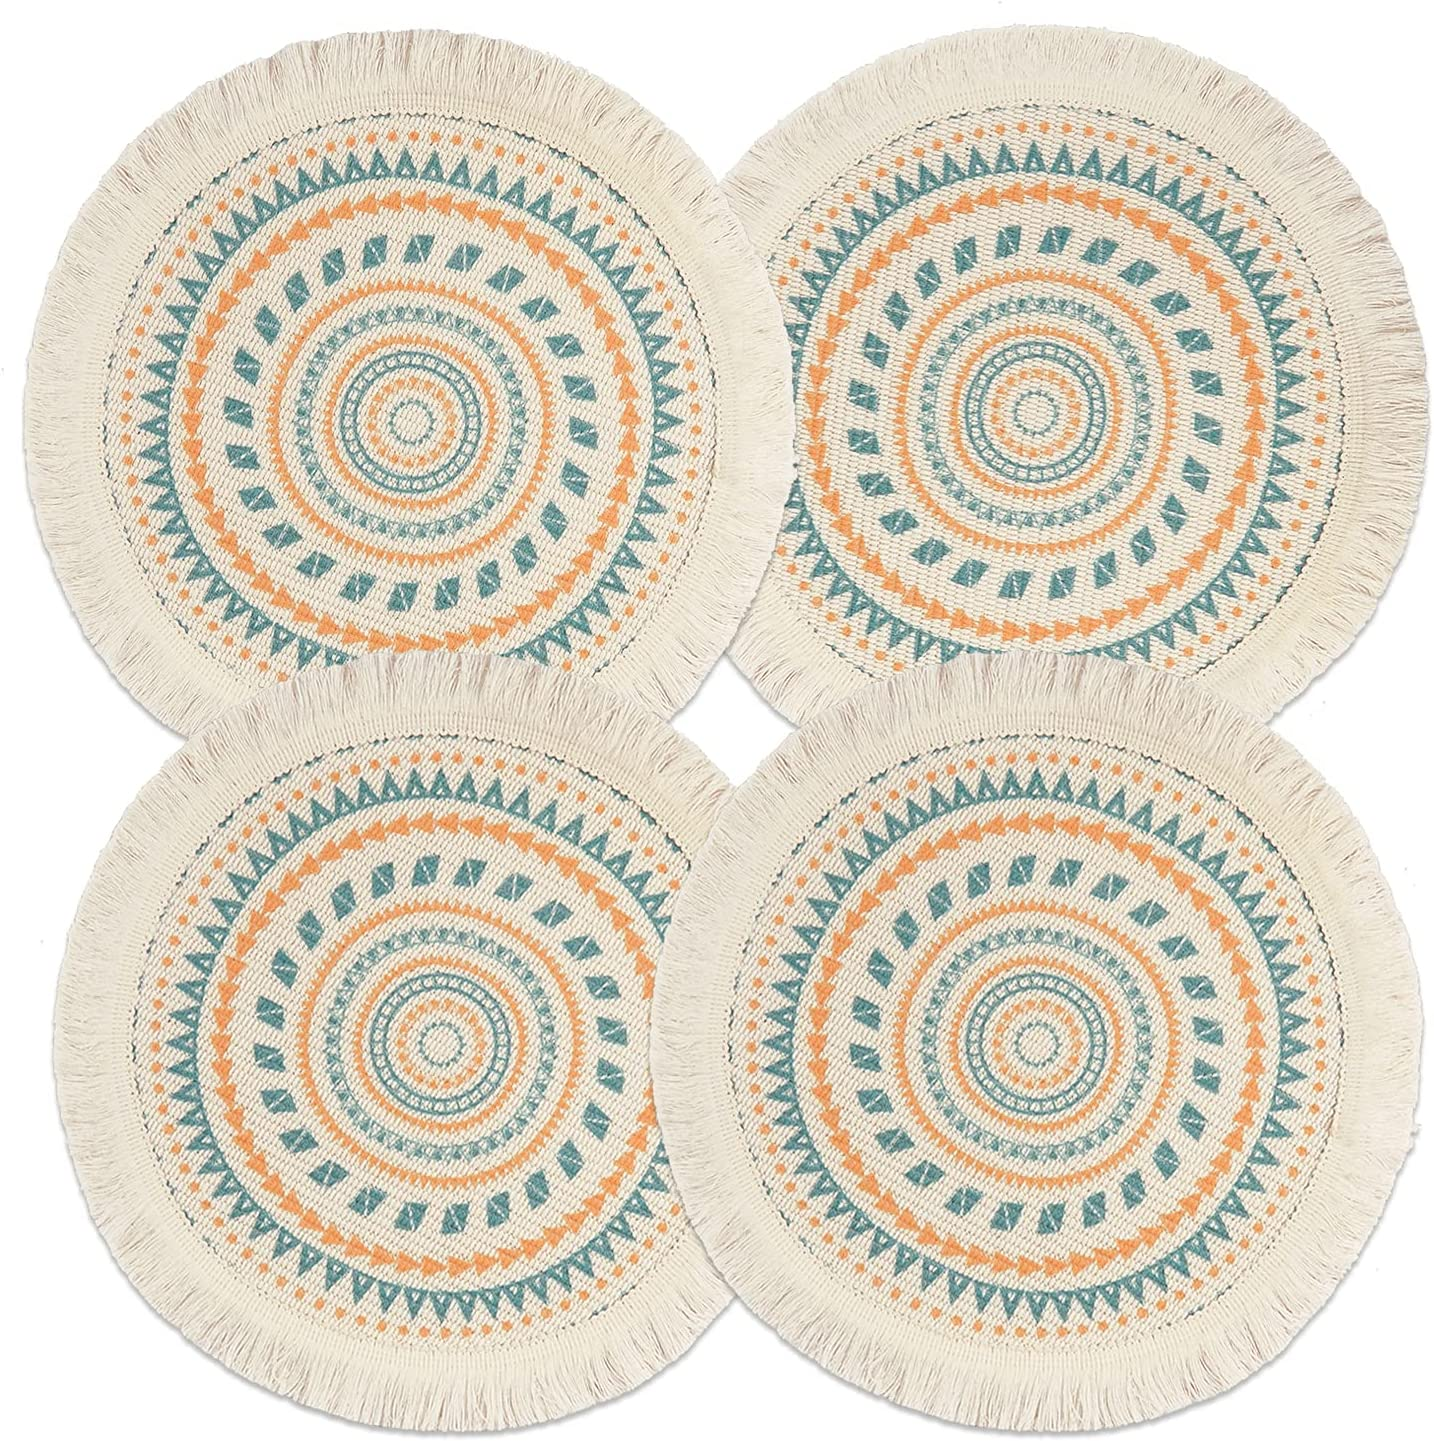 Sungea Mandala Round Placemats Set of 4, Boho Cotton Woven Macrame Tassels Table Mats Washable Heat Resistant Neutral Place Mat for Dining Room Kitchen Table Decor (13 Inches, Blue&Orange)